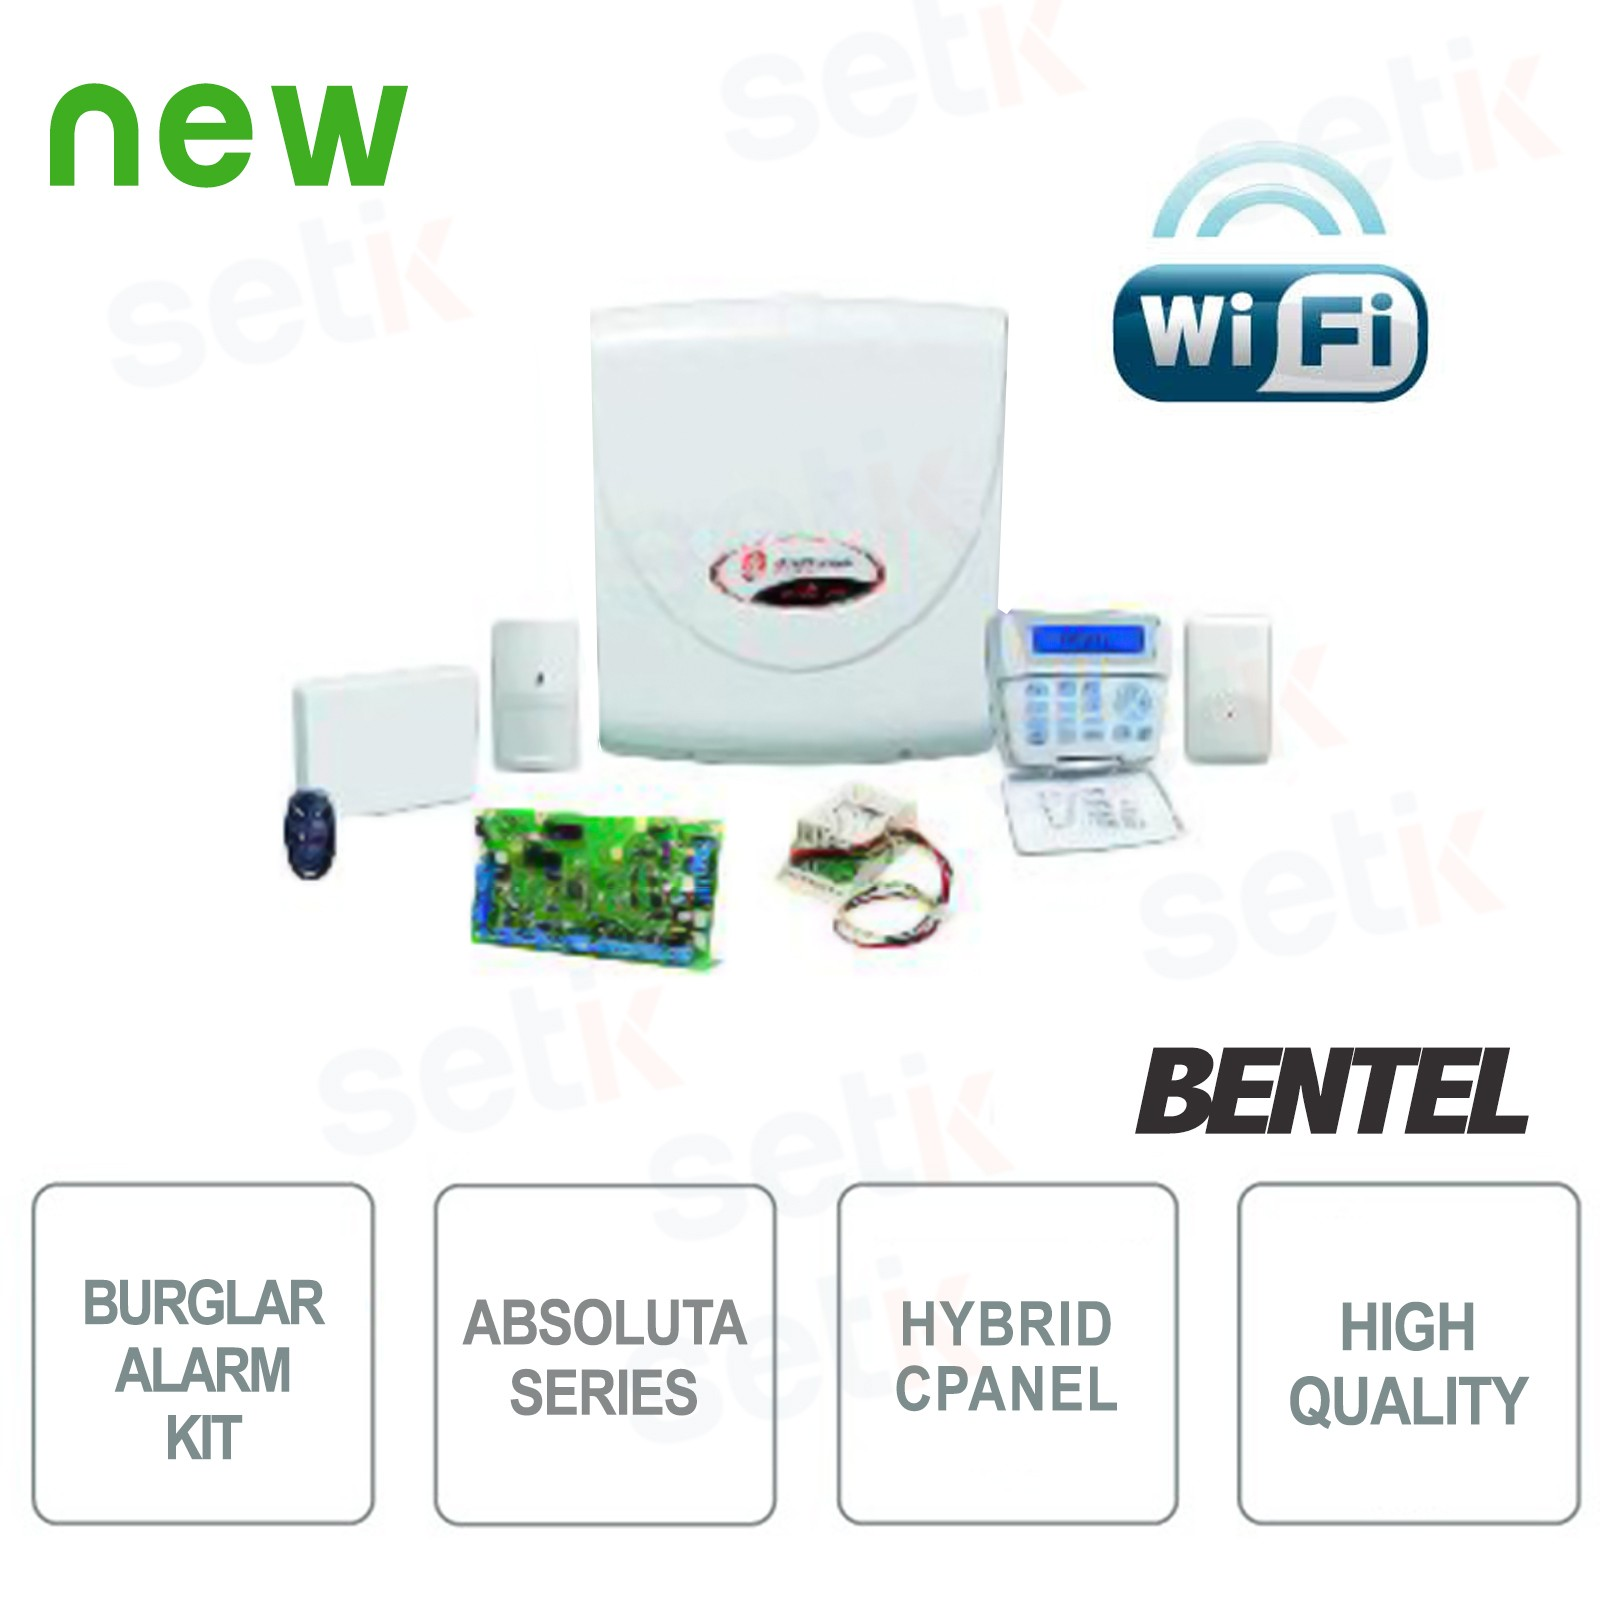 Abs 14kitsw kit antifurto completo bentel security for Bentel absoluta 42 prezzo